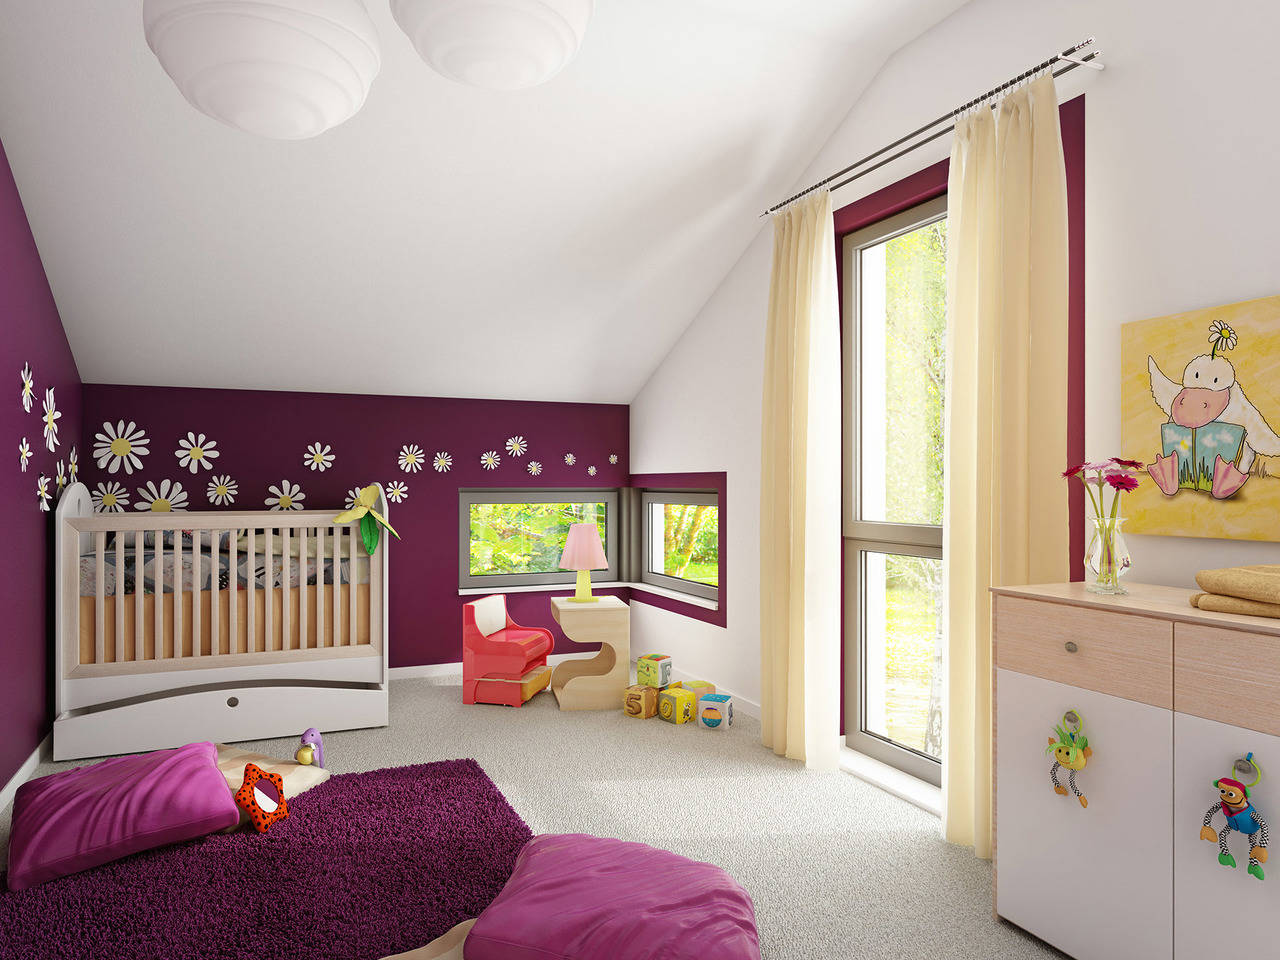 Haus SOLUTION 204 V8 Kinderzimmer von Living Haus